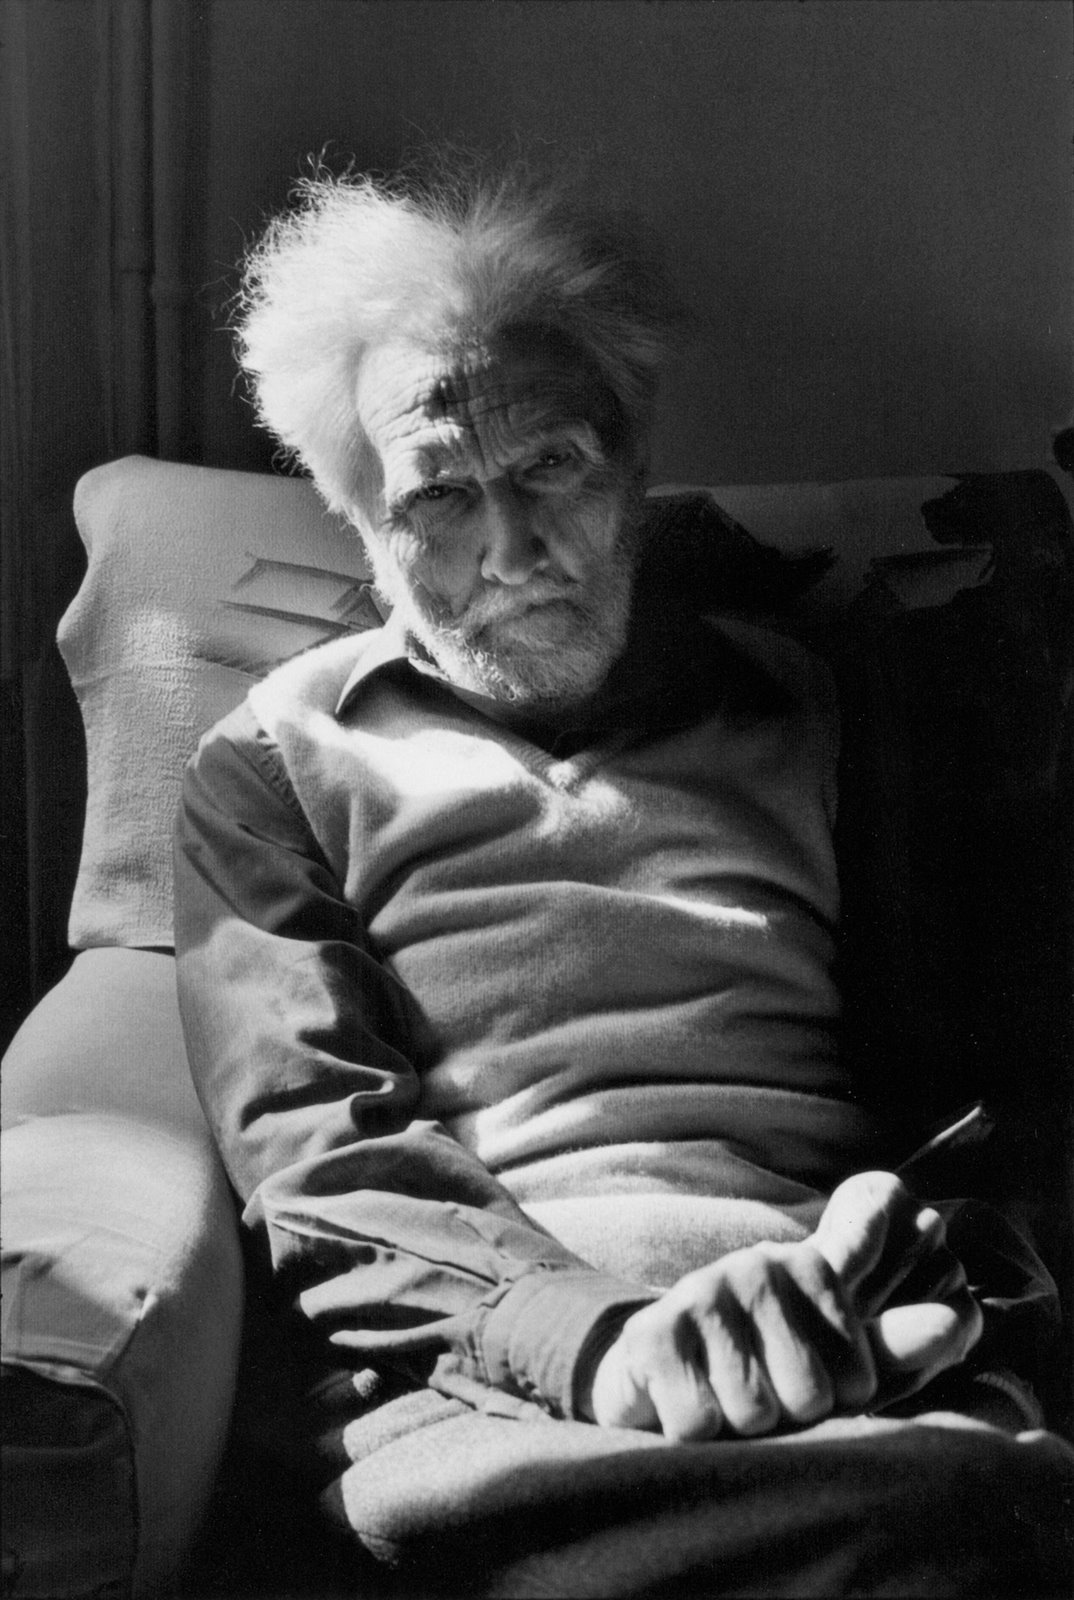 Ezra Pound - H. Cartier-Bresson